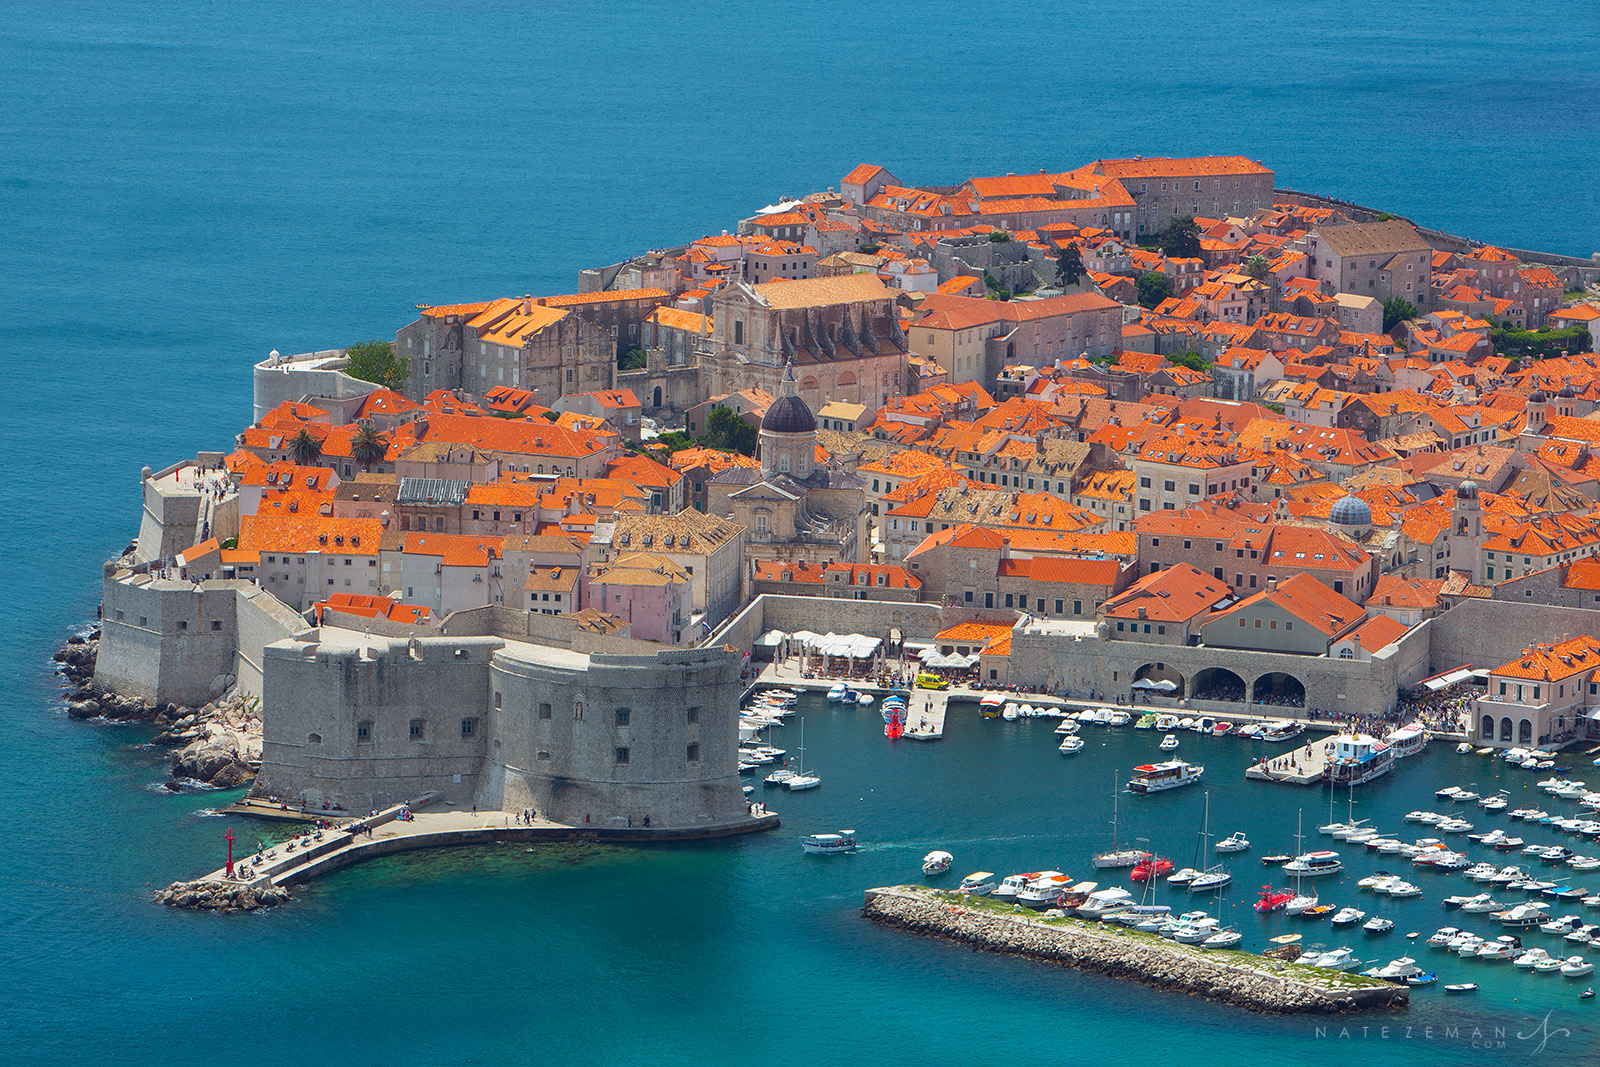 The Dalmatian Coast is dotted with beautiful cities and villages whose red roofed buildings are met by the crystal blue waters...